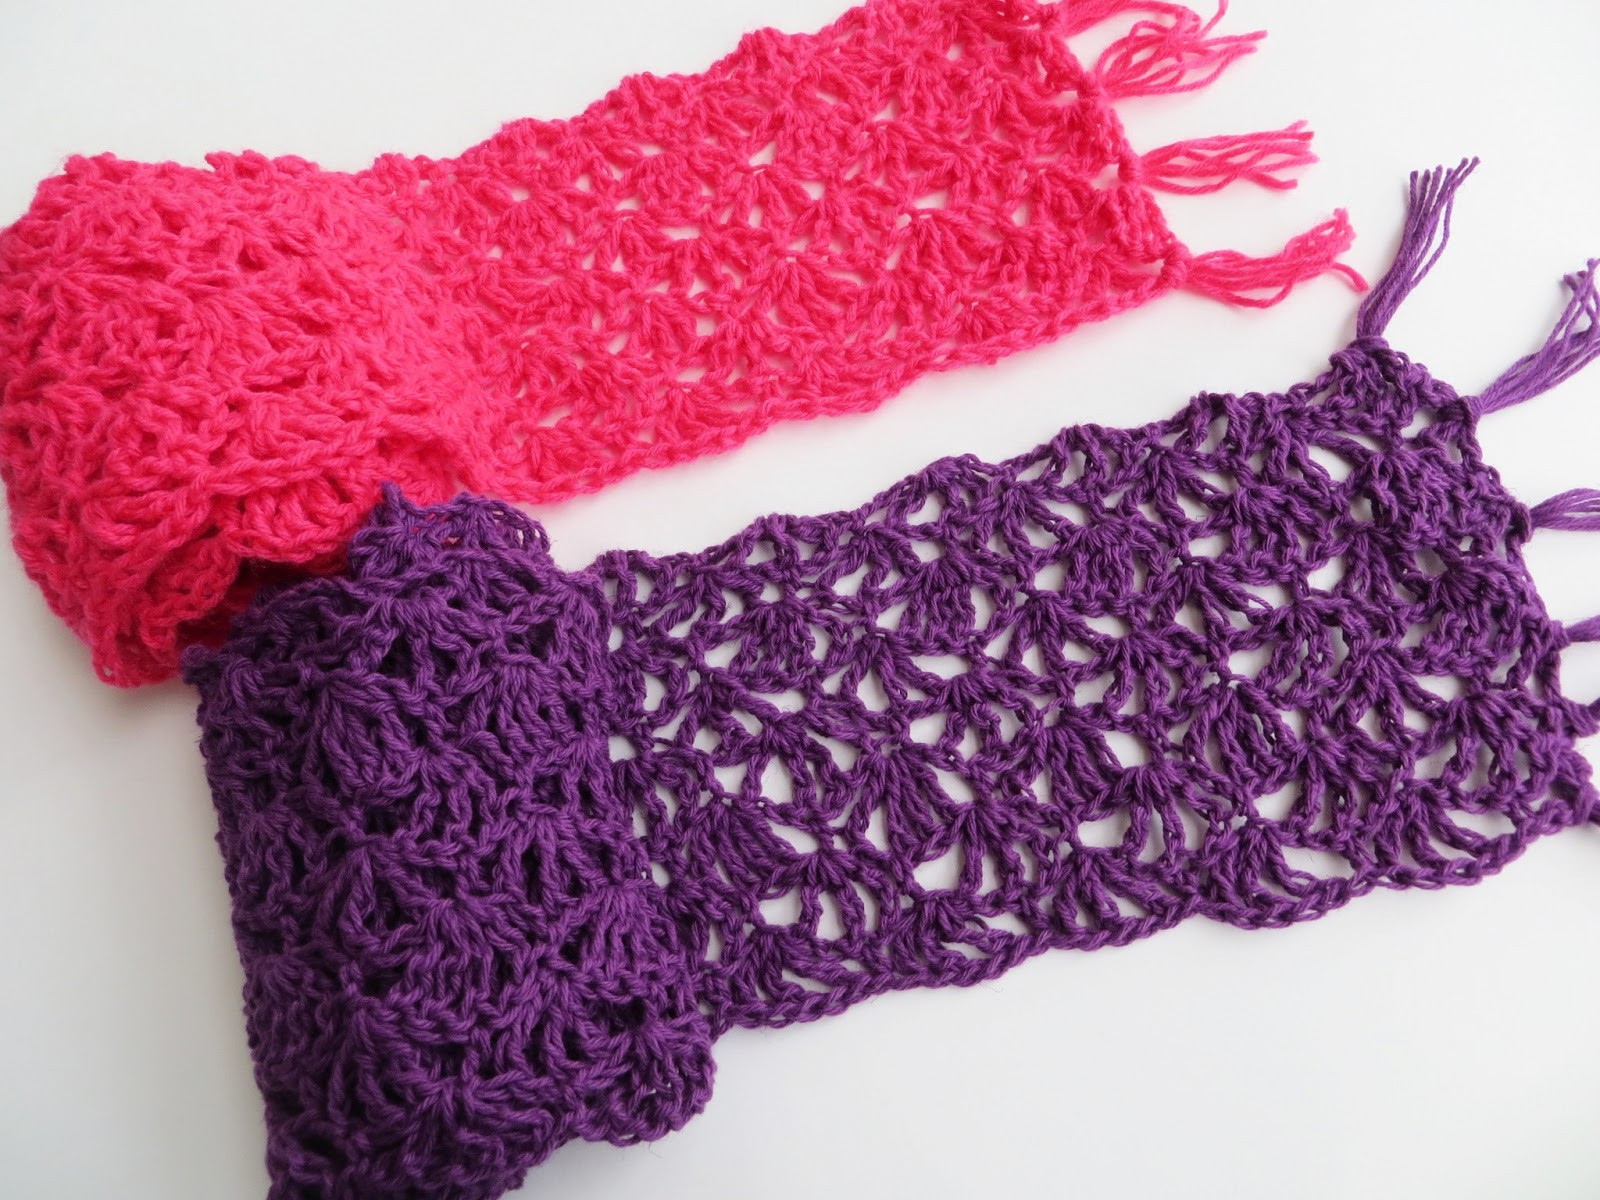 Best Of Crochet Dreamz Alana Lacy Scarf Free Crochet Pattern All Free Crochet Patterns Of Wonderful 50 Pictures All Free Crochet Patterns